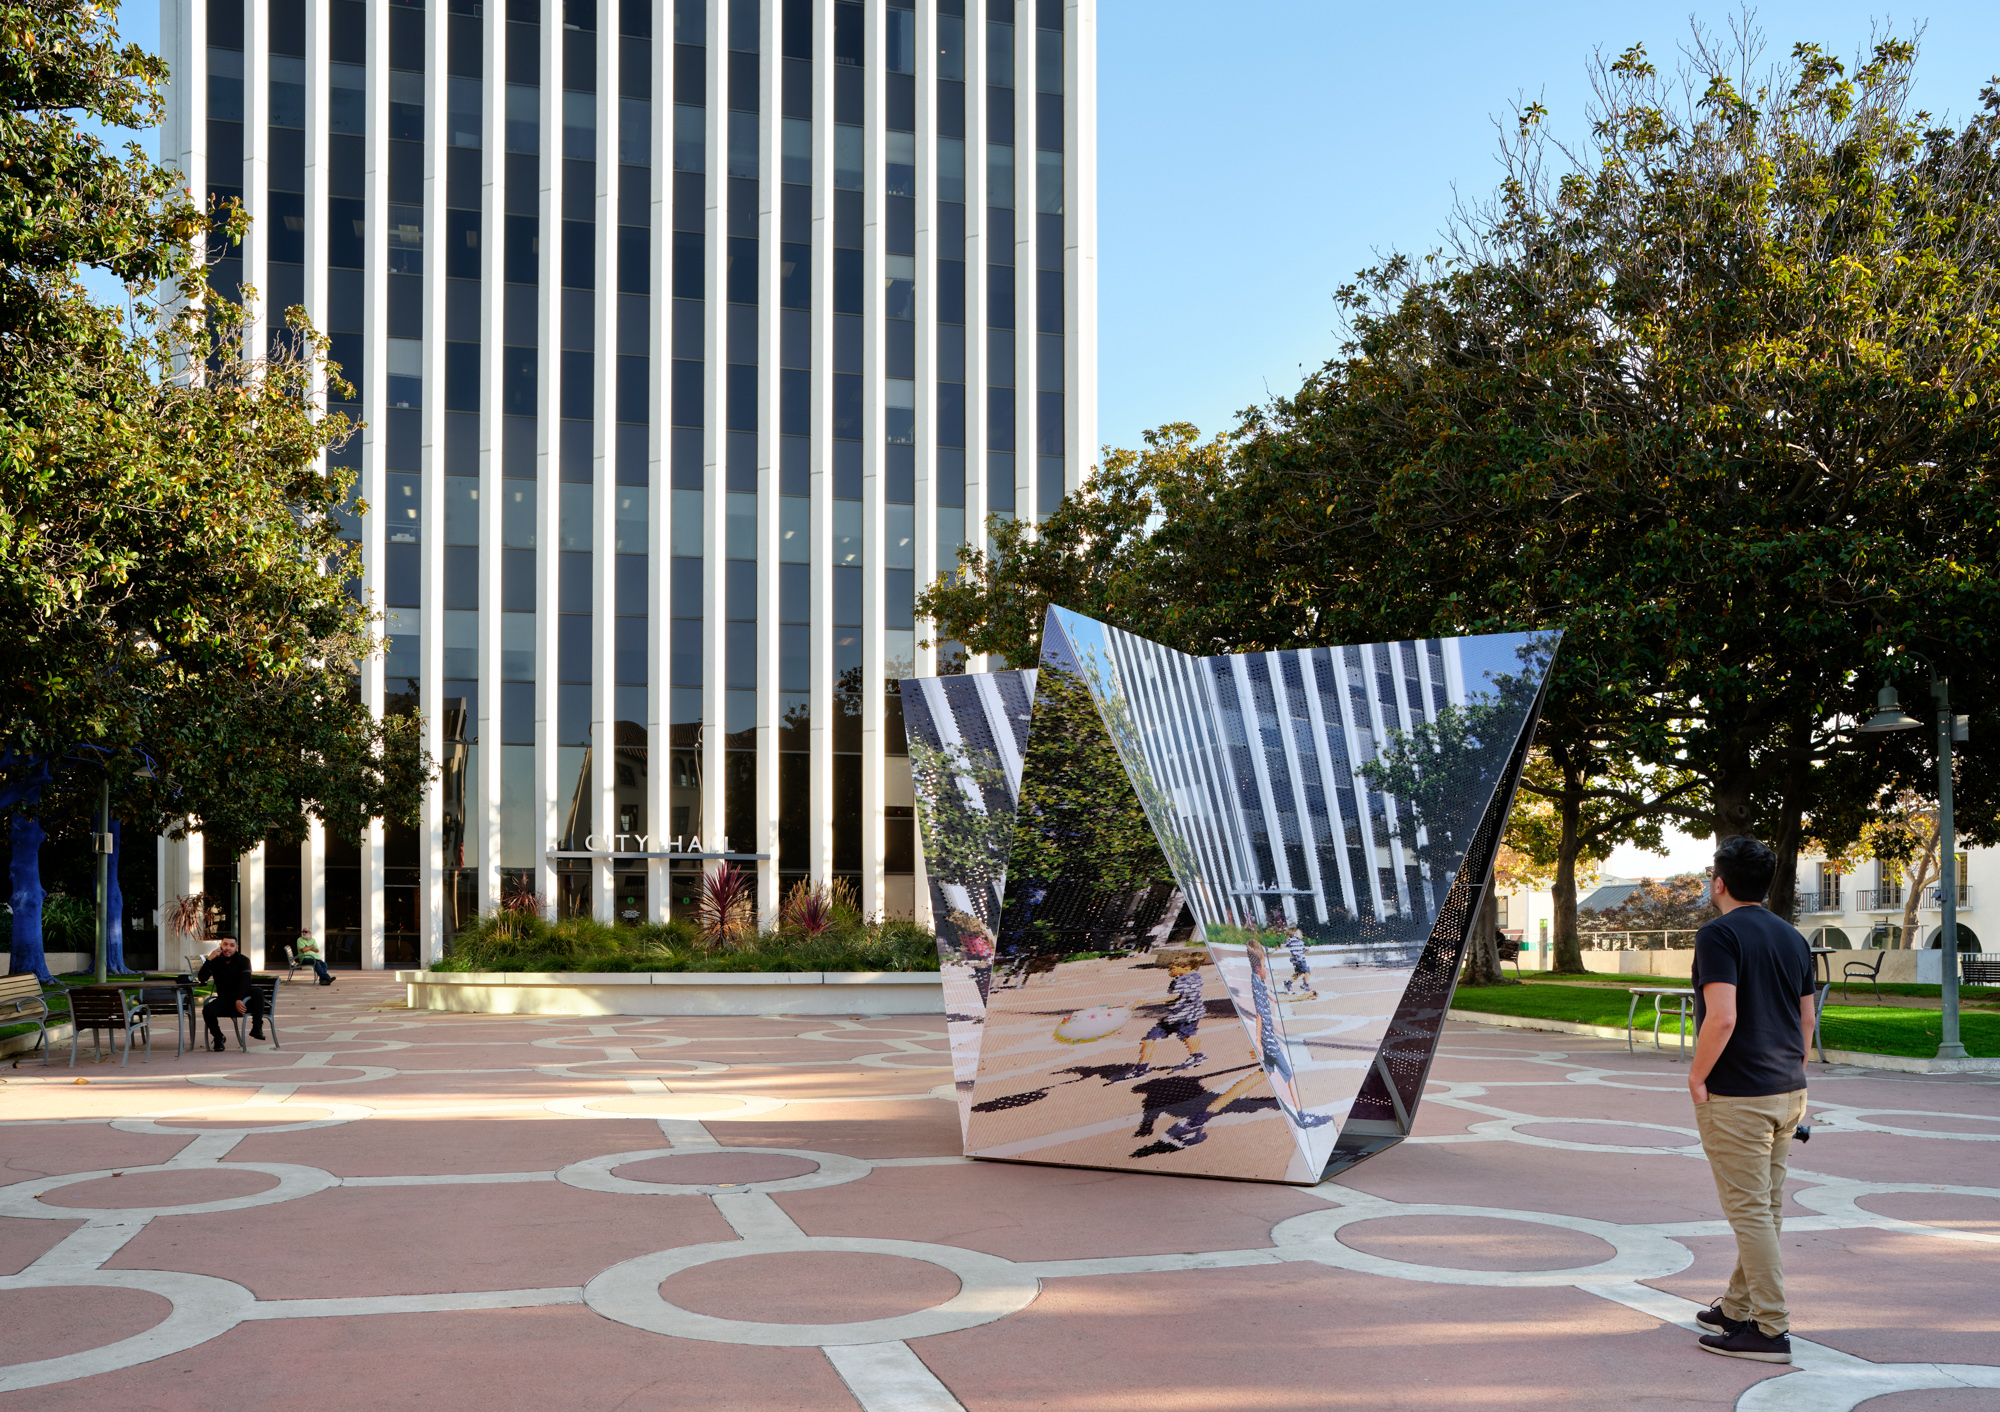 A man walking by a mirrored crystal structure in Palo Alto